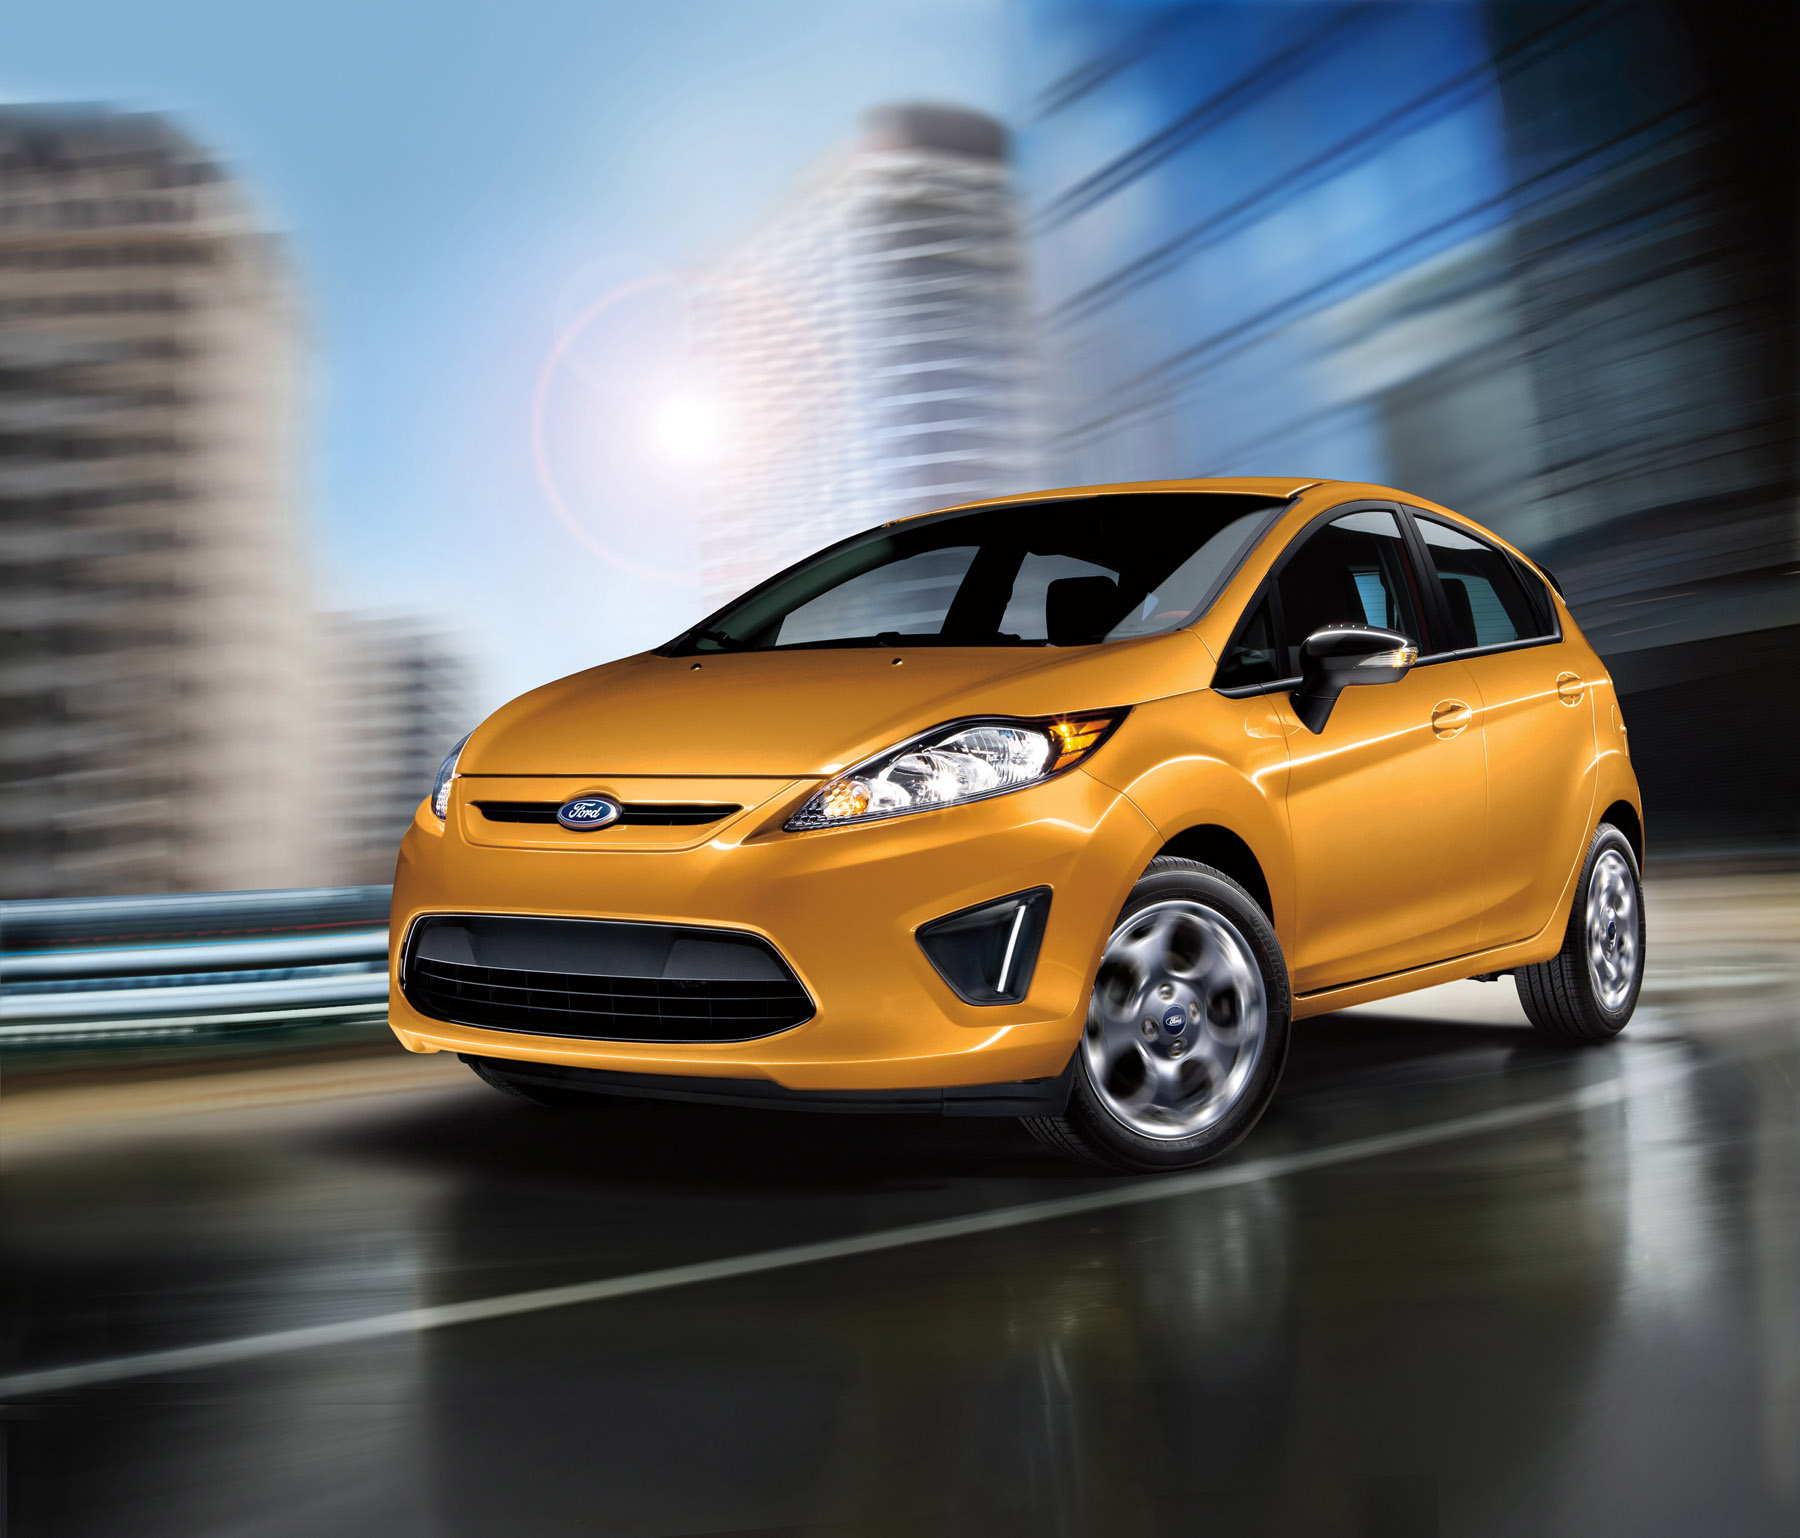 Manufacturer photo: Ford's best-sellers in the U.S.in 2012 are the Focus, Fiesta and F-Series.